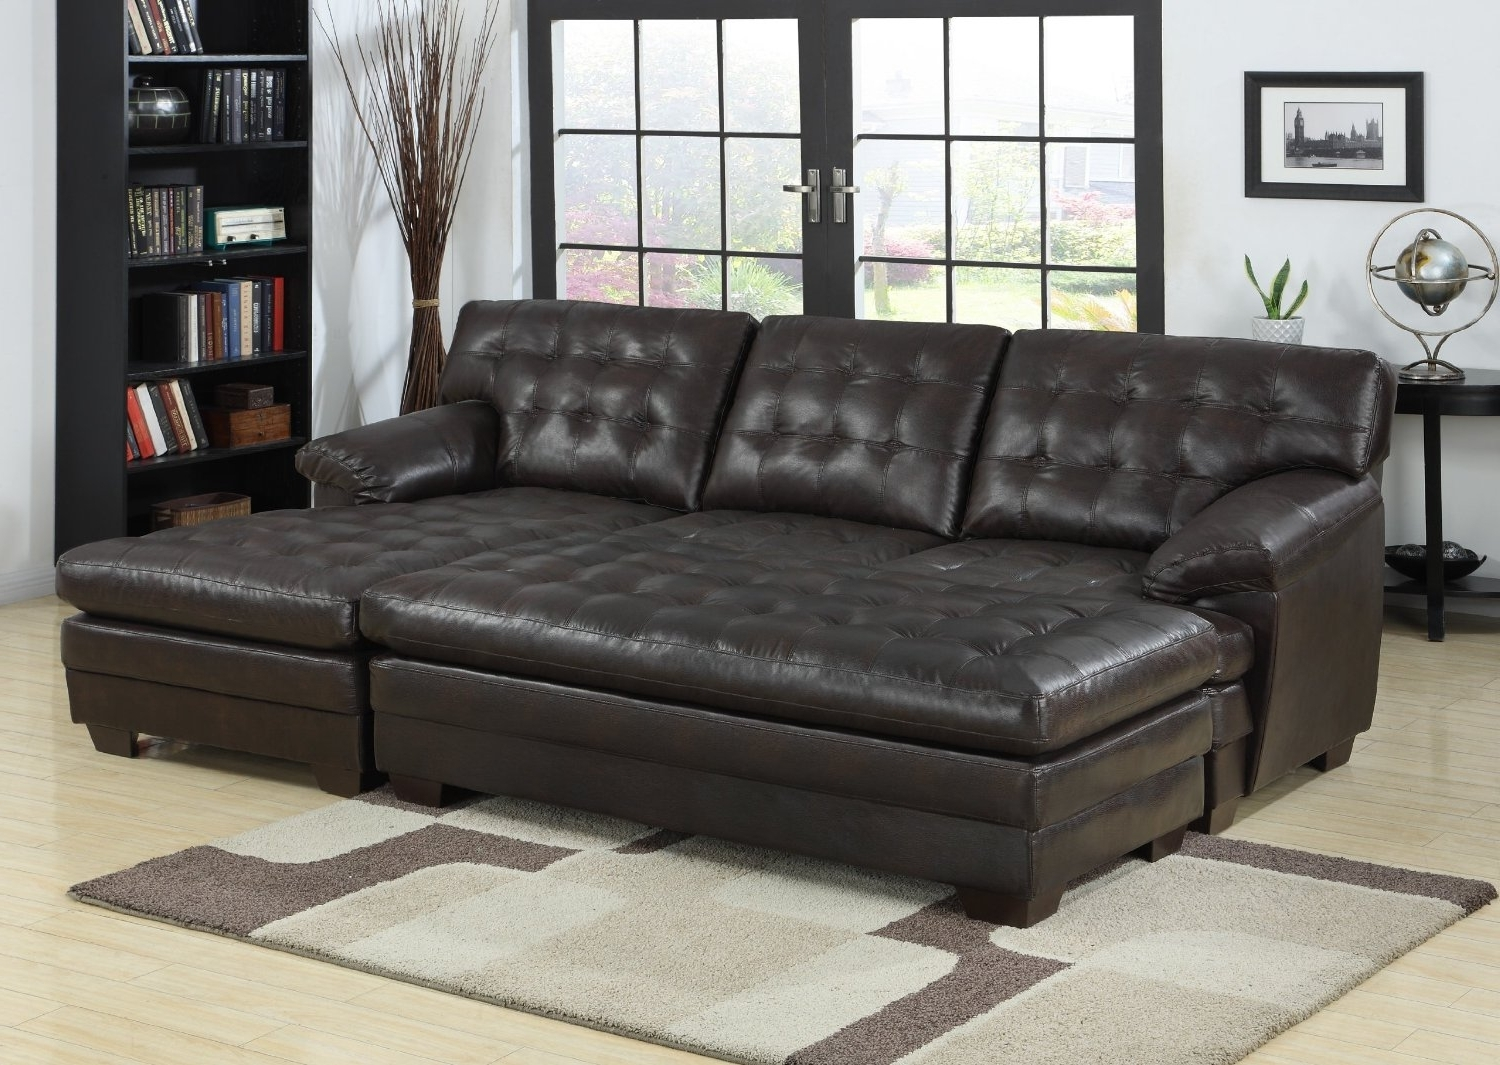 Favorite Double Chaise Lounge Sofa Image Gallery — The Home Redesign : The With Regard To Double Chaise Lounge Sofas (View 7 of 15)